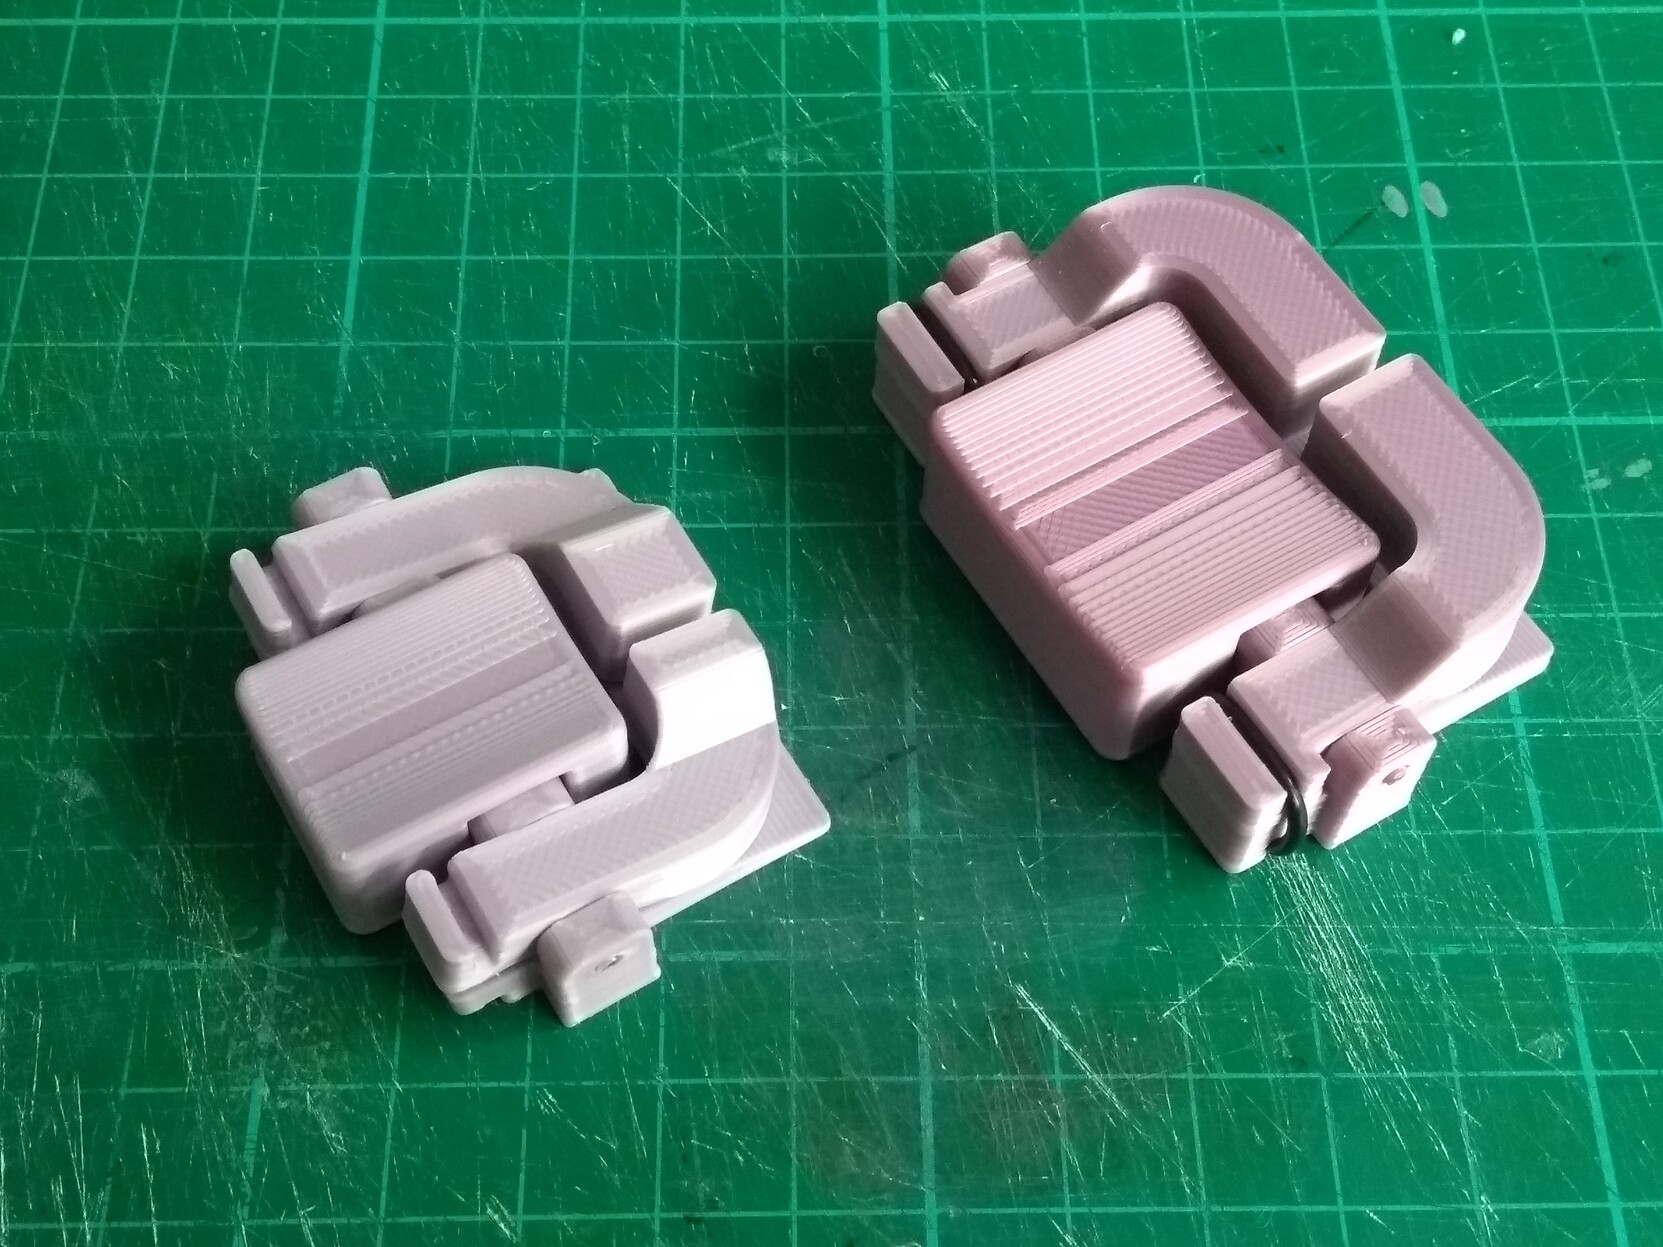 Two 3D printed prototypes of the buttons. The first (left) is smaller and the buttons turned out to be too small. The second is wider and gives more space for you to press the buttons with your thumb, without accidentally pressing both.